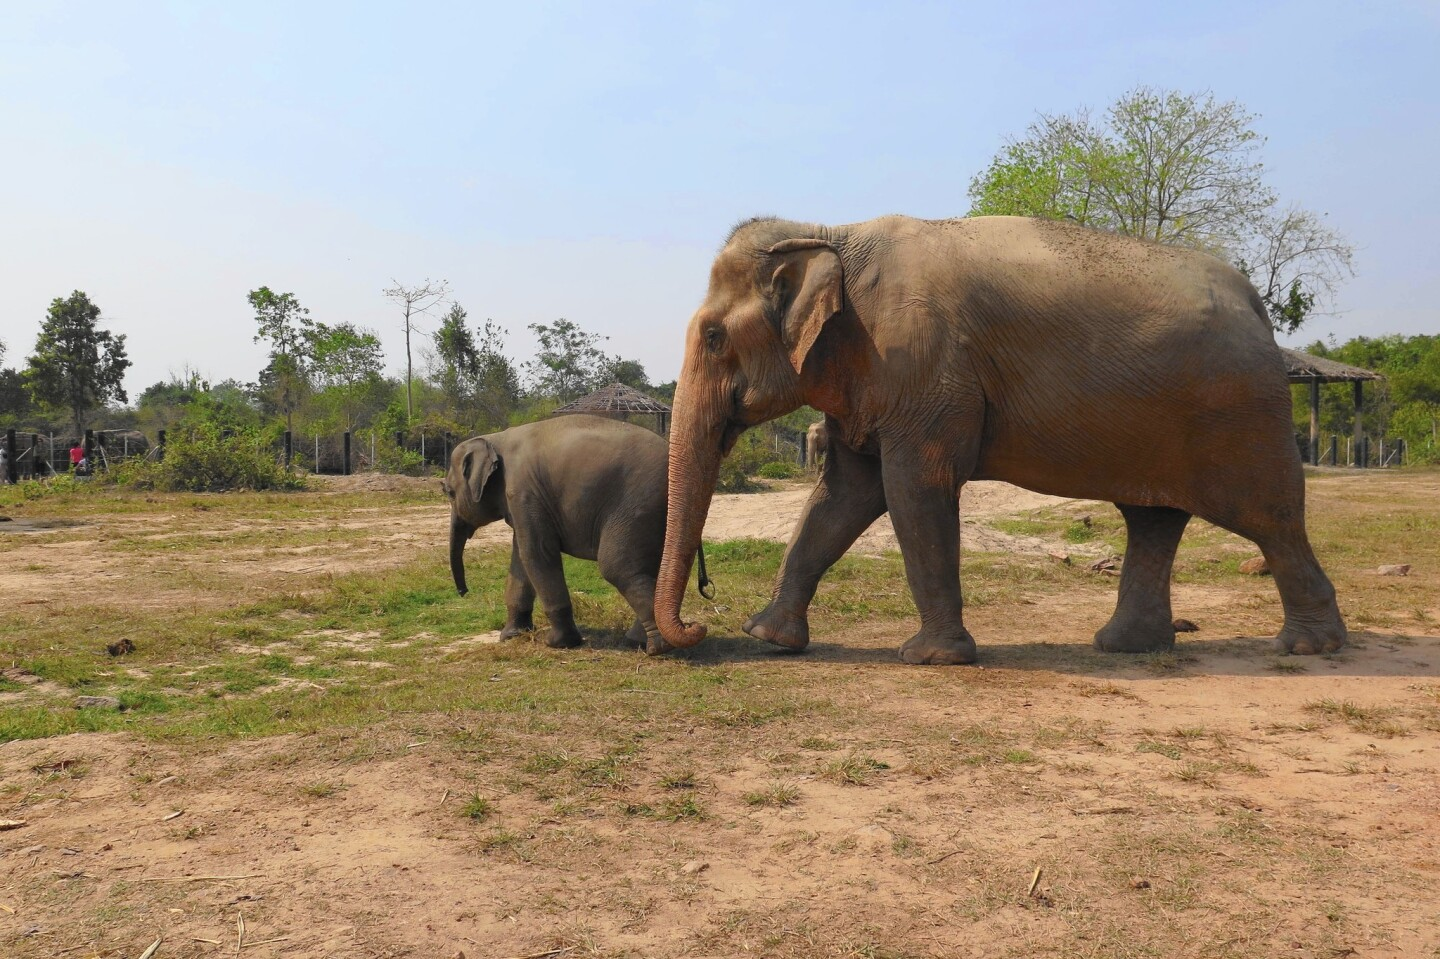 A baby elephant is one of the 17 elephants at the Wildlife Friends Foundation Thailand's refuge.